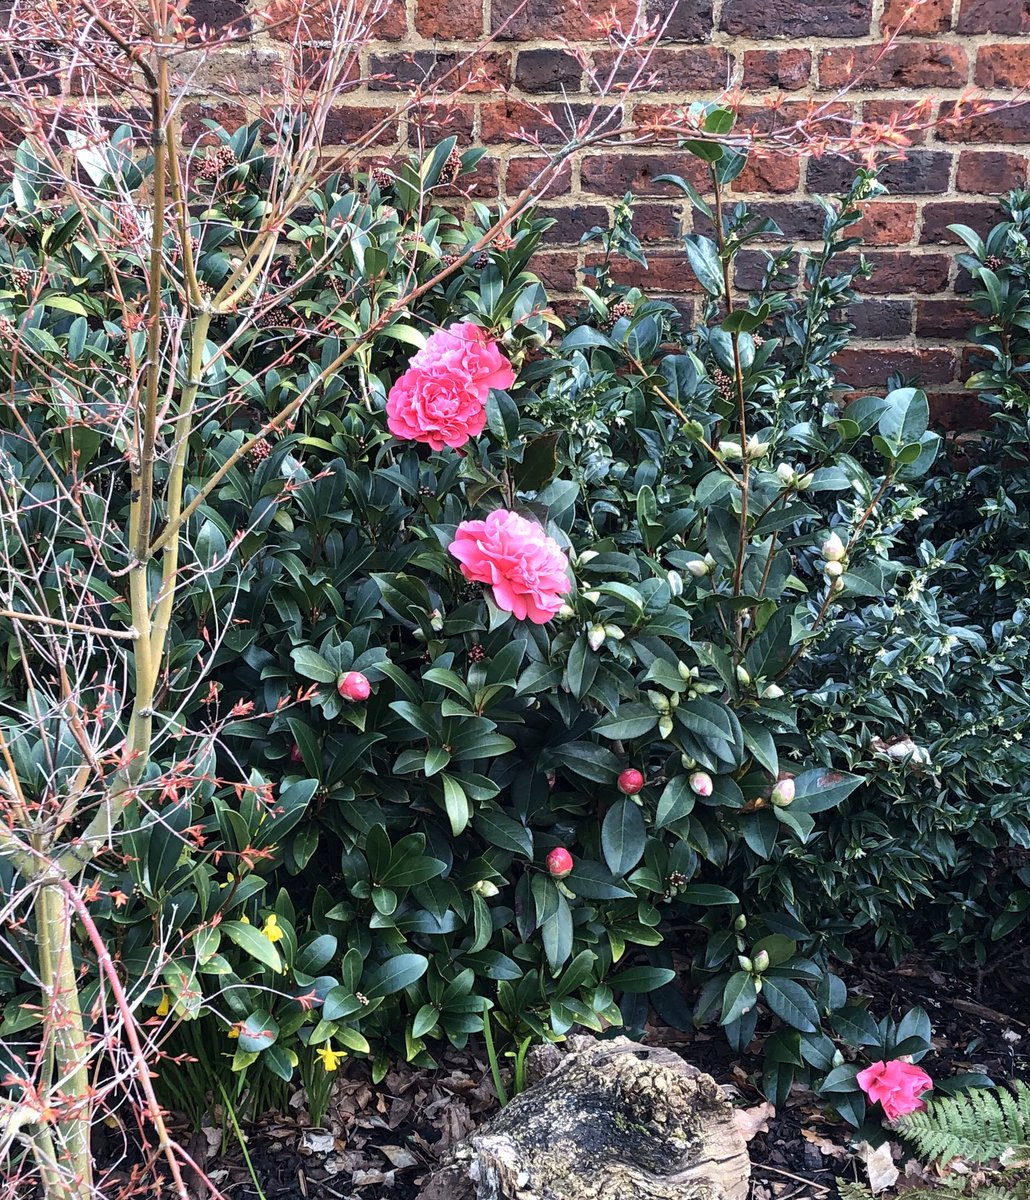 #Camellias are just coming out! Click and https://valentines.org.uk/history/the-development-of-the-gardens-park/… scroll down to section 4 for the #history of the camellia @ValMansion